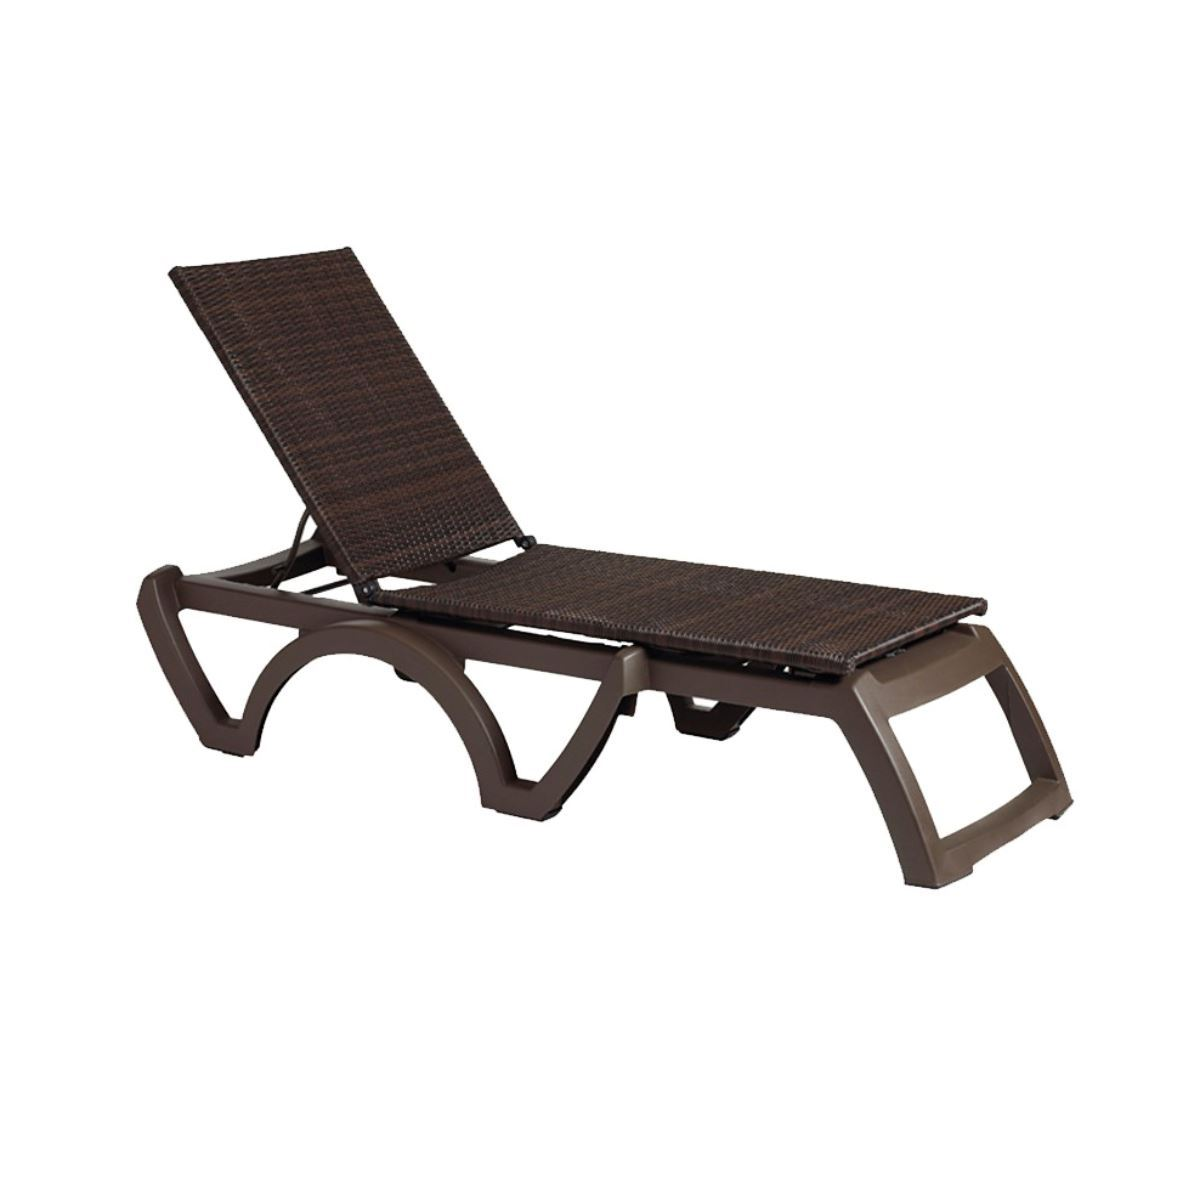 Grosfillex Java Stacking Chaise Resort Chairs